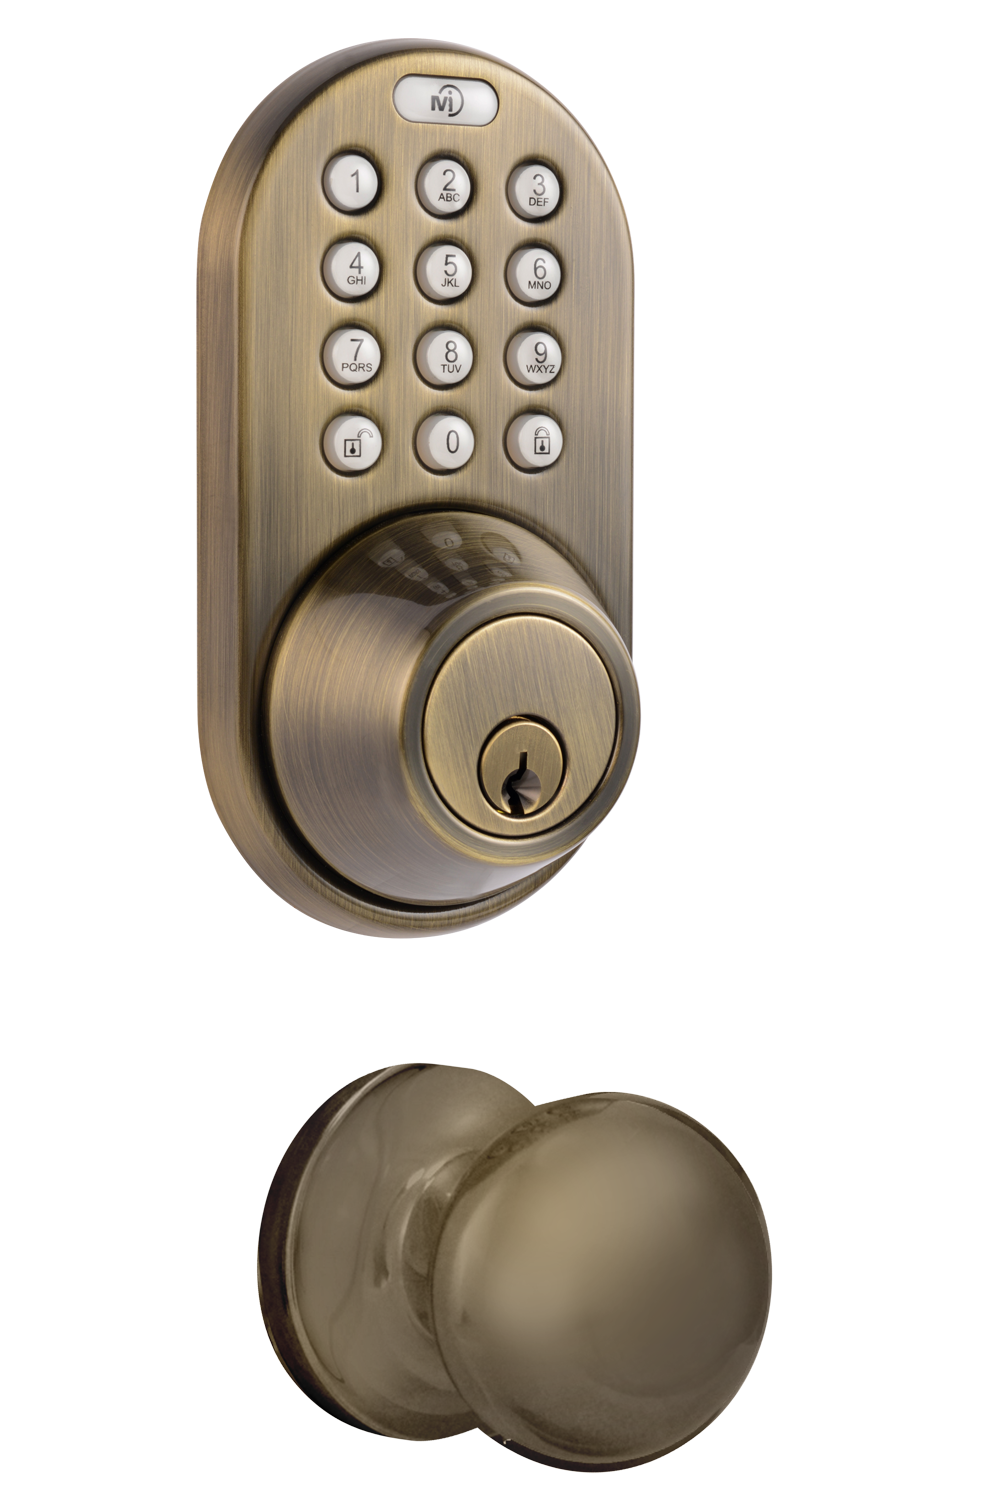 zw dp living works z bronze alexa yale door rubbed wave lock with lever smartthings real replacement via parts keyless touchscreen oil